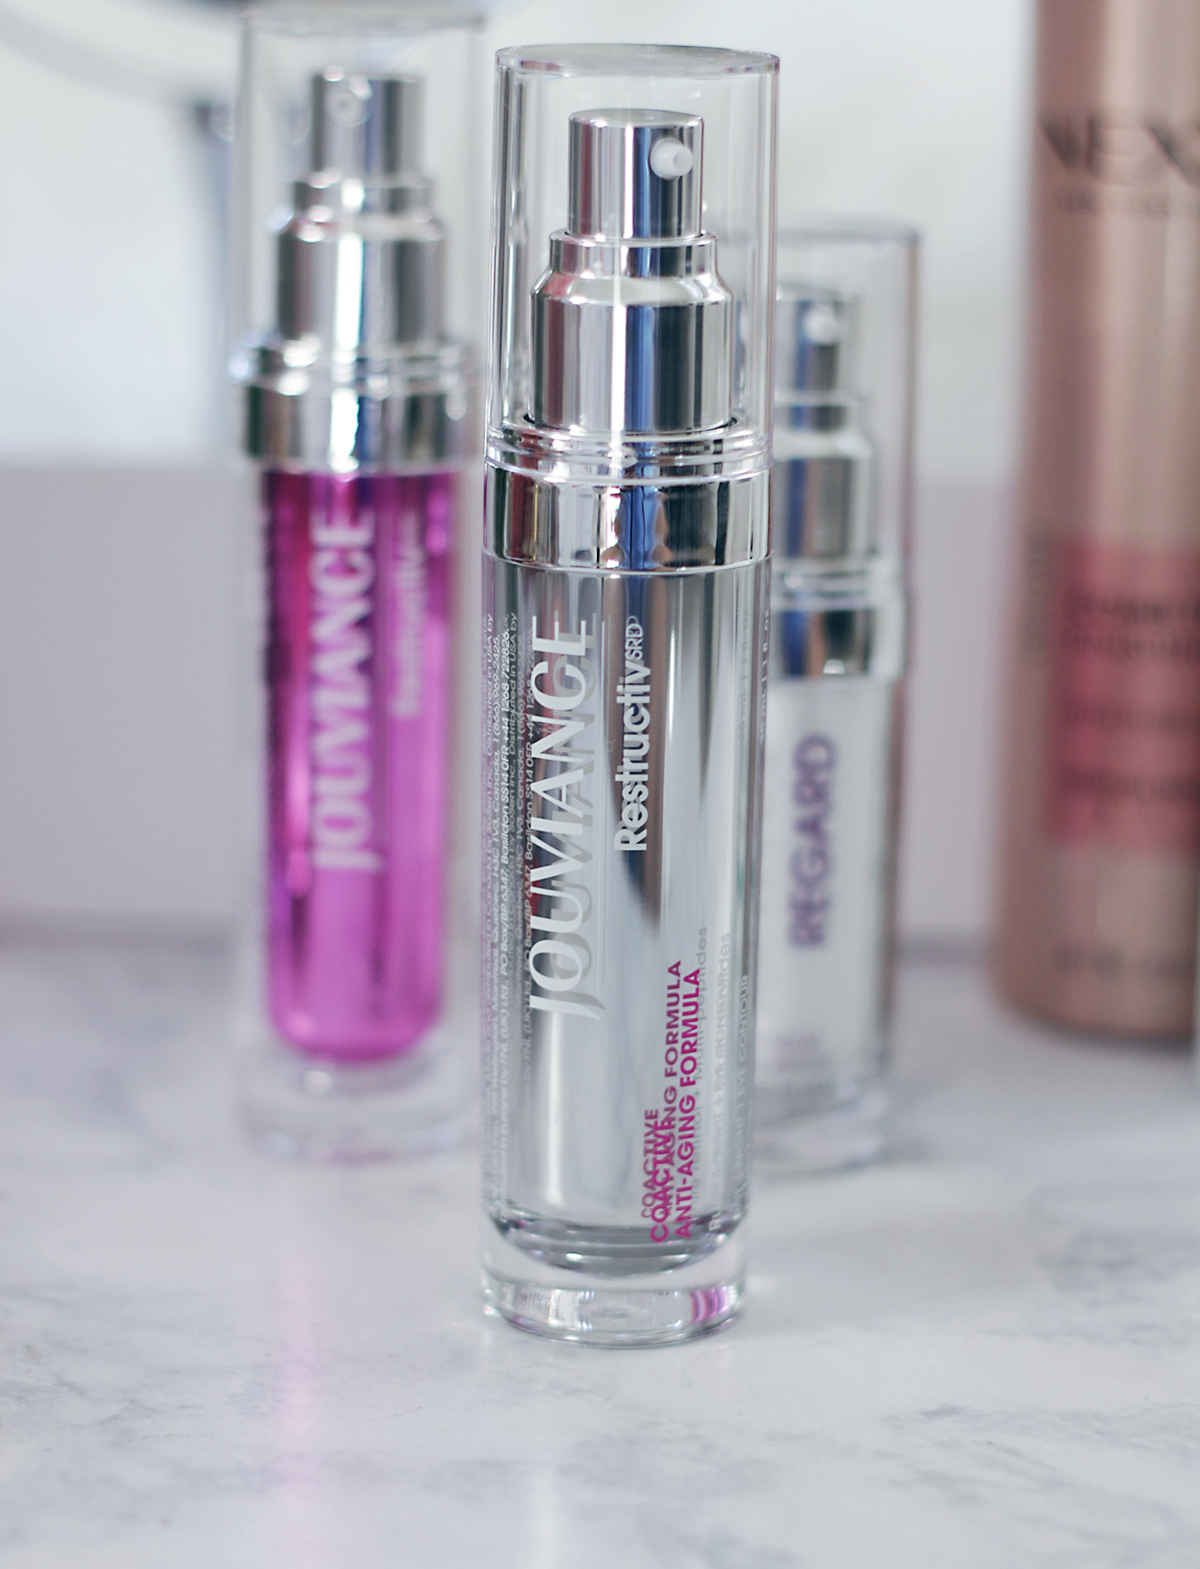 jouviance-restructiv-serum-makeup-life-and-love